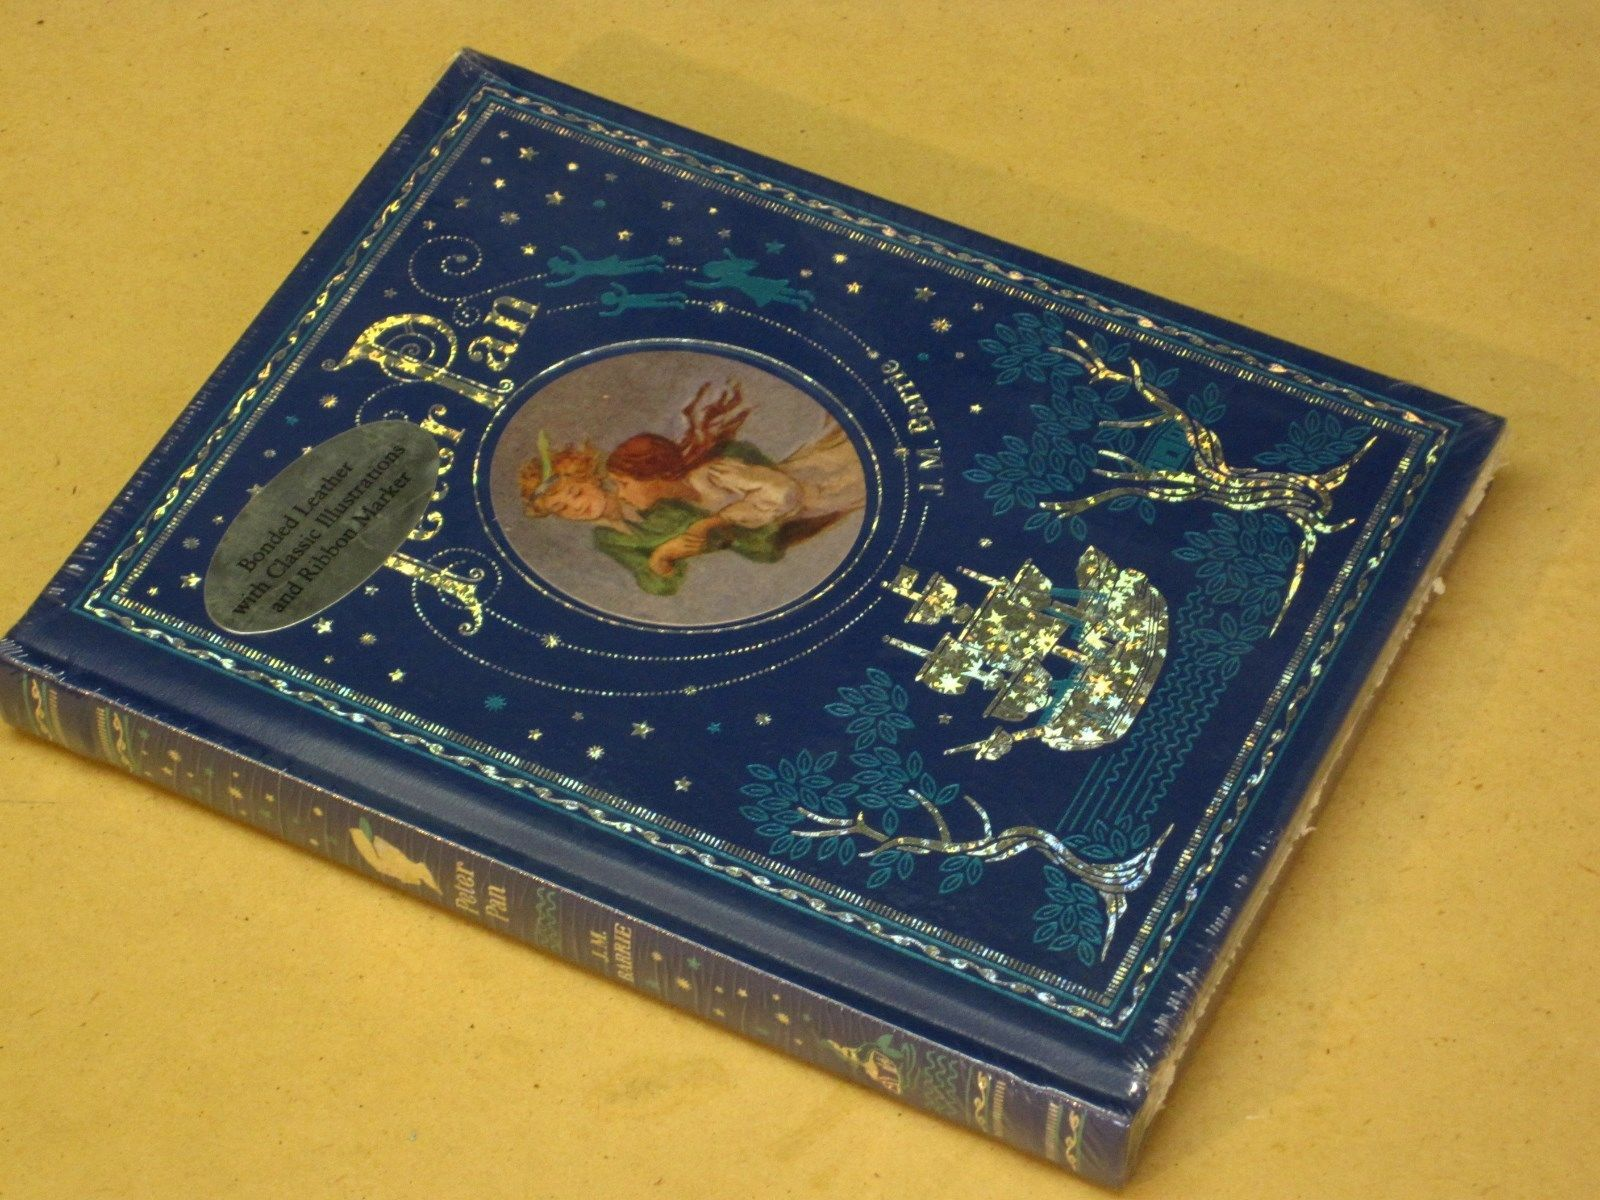 peter pan by j m barrie illustrated by f d bedford peter pan by j m barrie illustrated by f d bedford leatherbound brand new in books antiquarian collectible